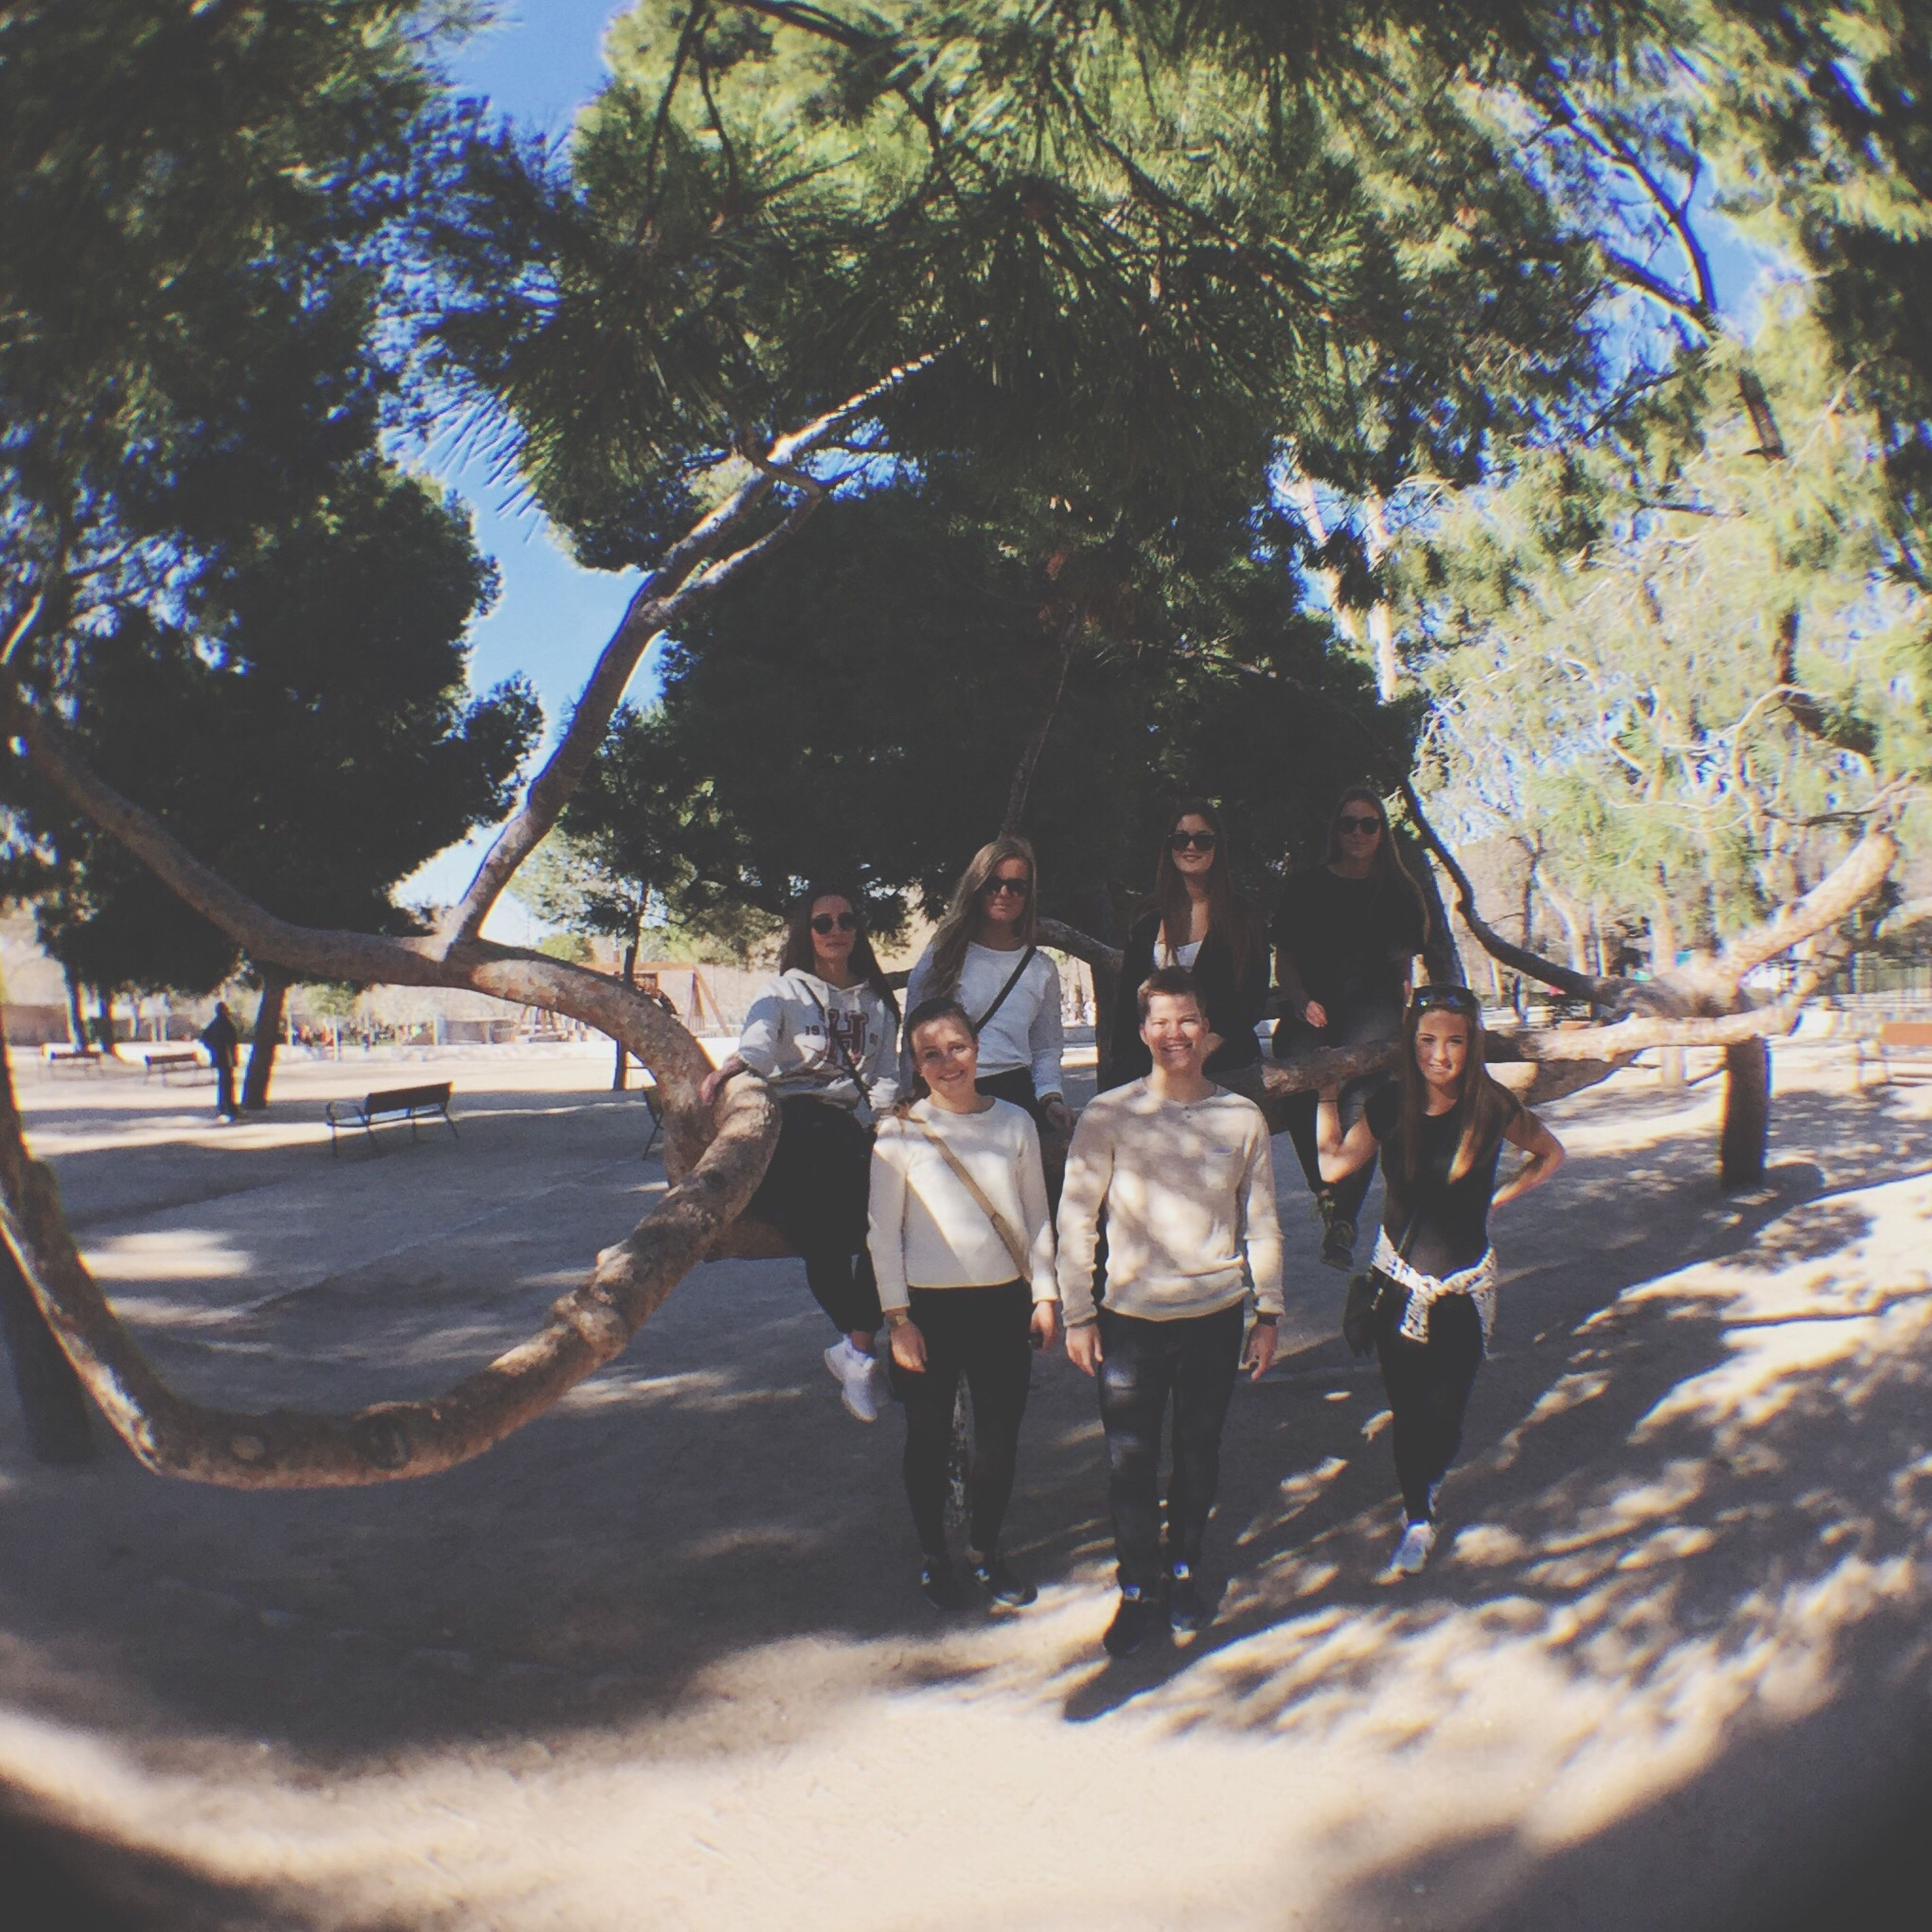 tree, men, lifestyles, leisure activity, sand, walking, beach, person, shadow, sunlight, large group of people, full length, nature, tourist, vacations, day, togetherness, rear view, tree trunk